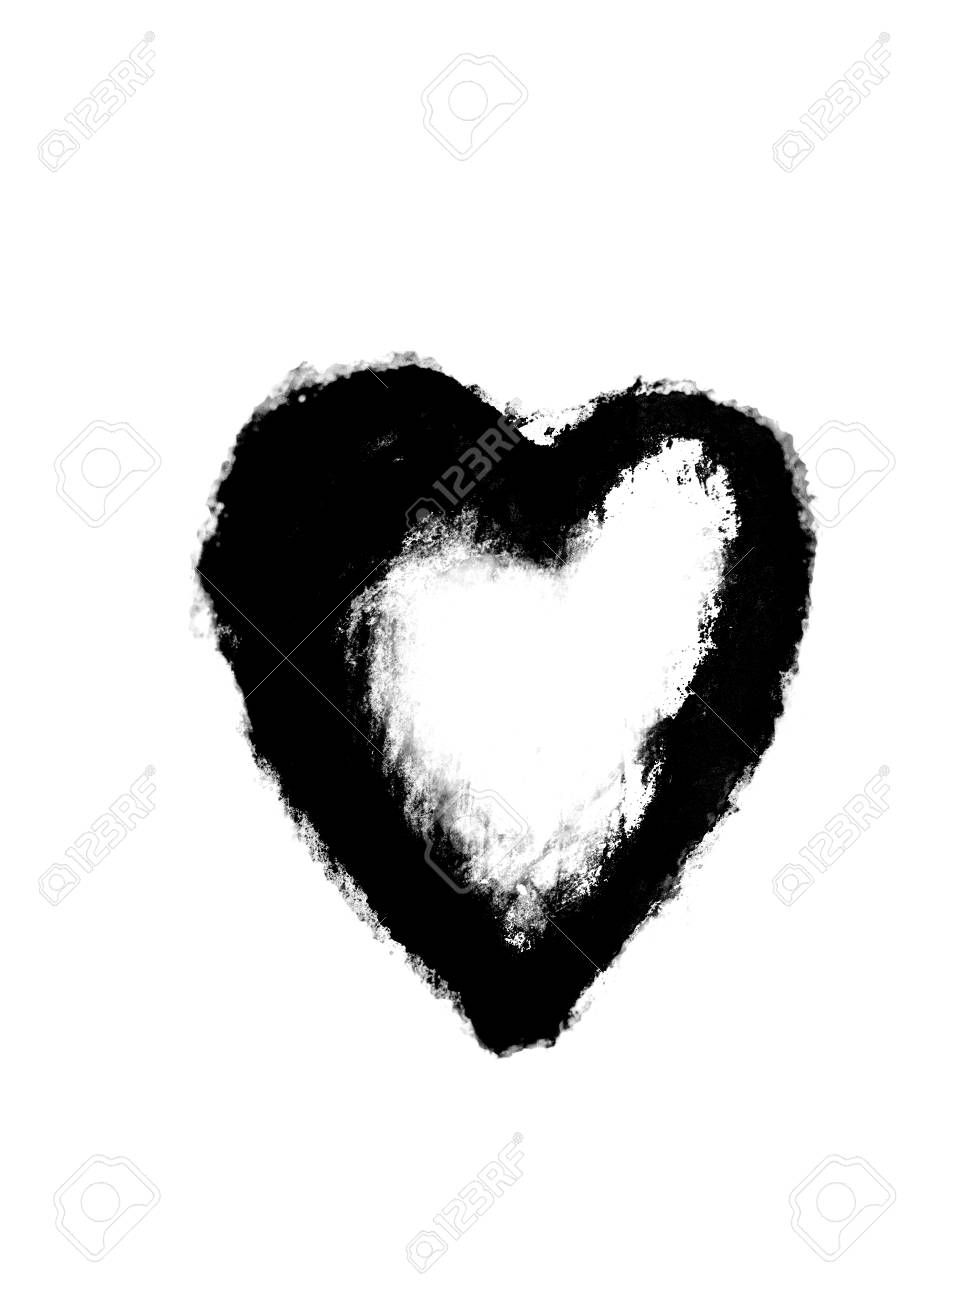 Messy heart sketch a heart shape roughly sketched in charcoal